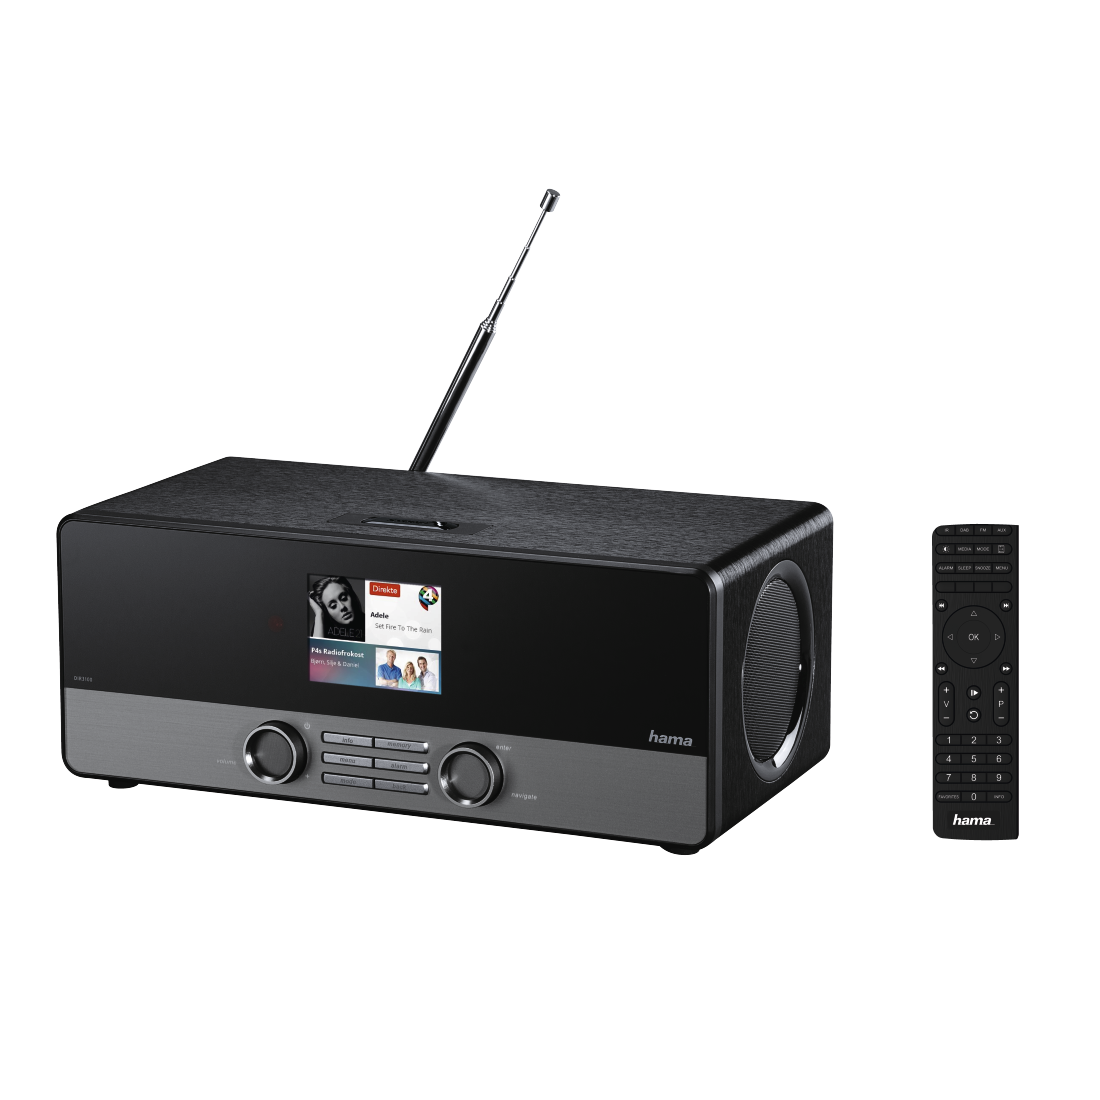 abx7 High-Res Image 7 - Hama, DIR3100MS Digital Radio, Internet Radio/DAB+/FM/Multi-Room/ App Control